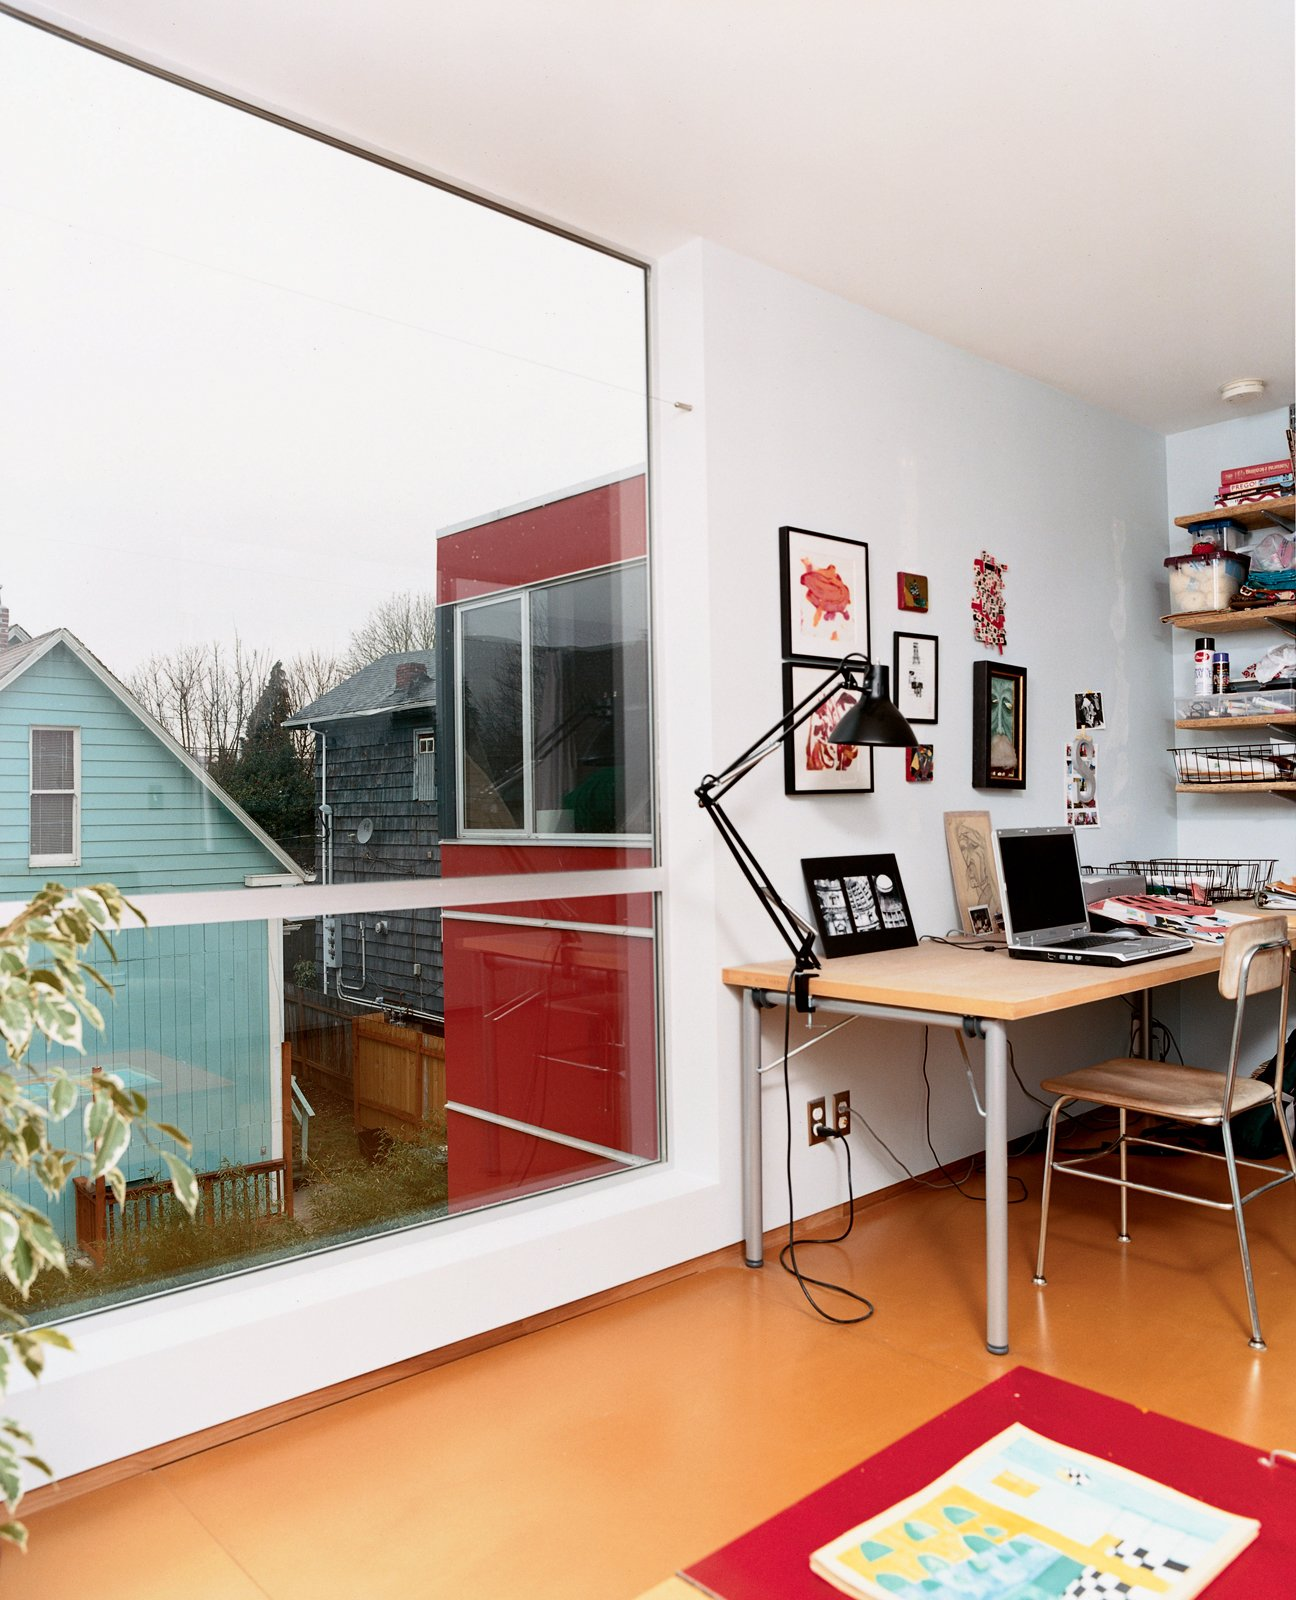 Sarti's upstairs office provides a cozy corner for work and relaxation. The large windows allow him to search the surrounding backyards for inspiration when stuck in a rut.  Photo 4 of 8 in Halving It All